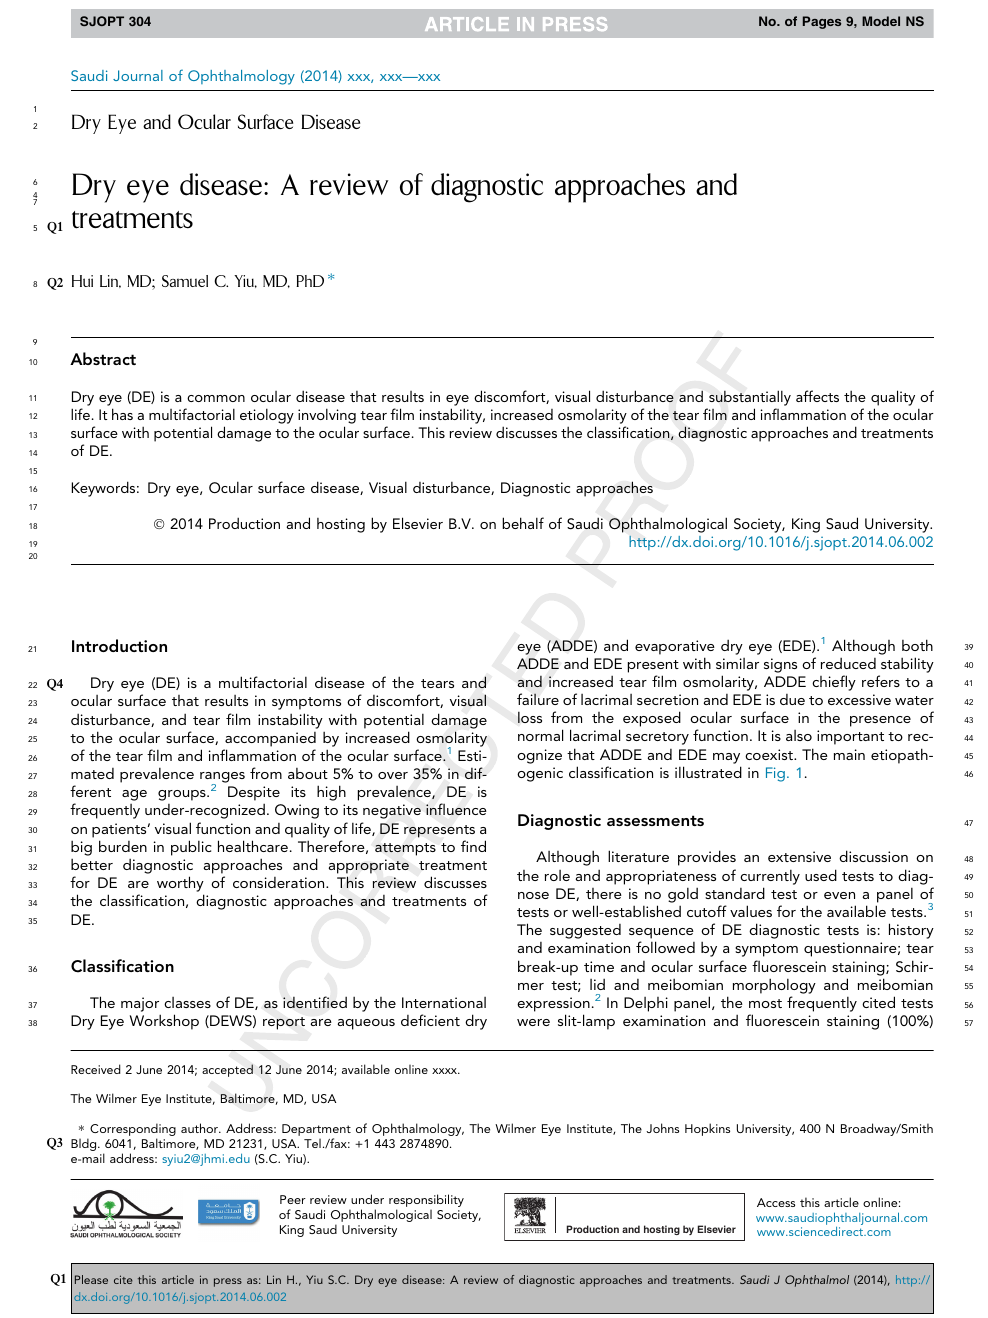 Dry eye disease: A review of diagnostic approaches and treatments